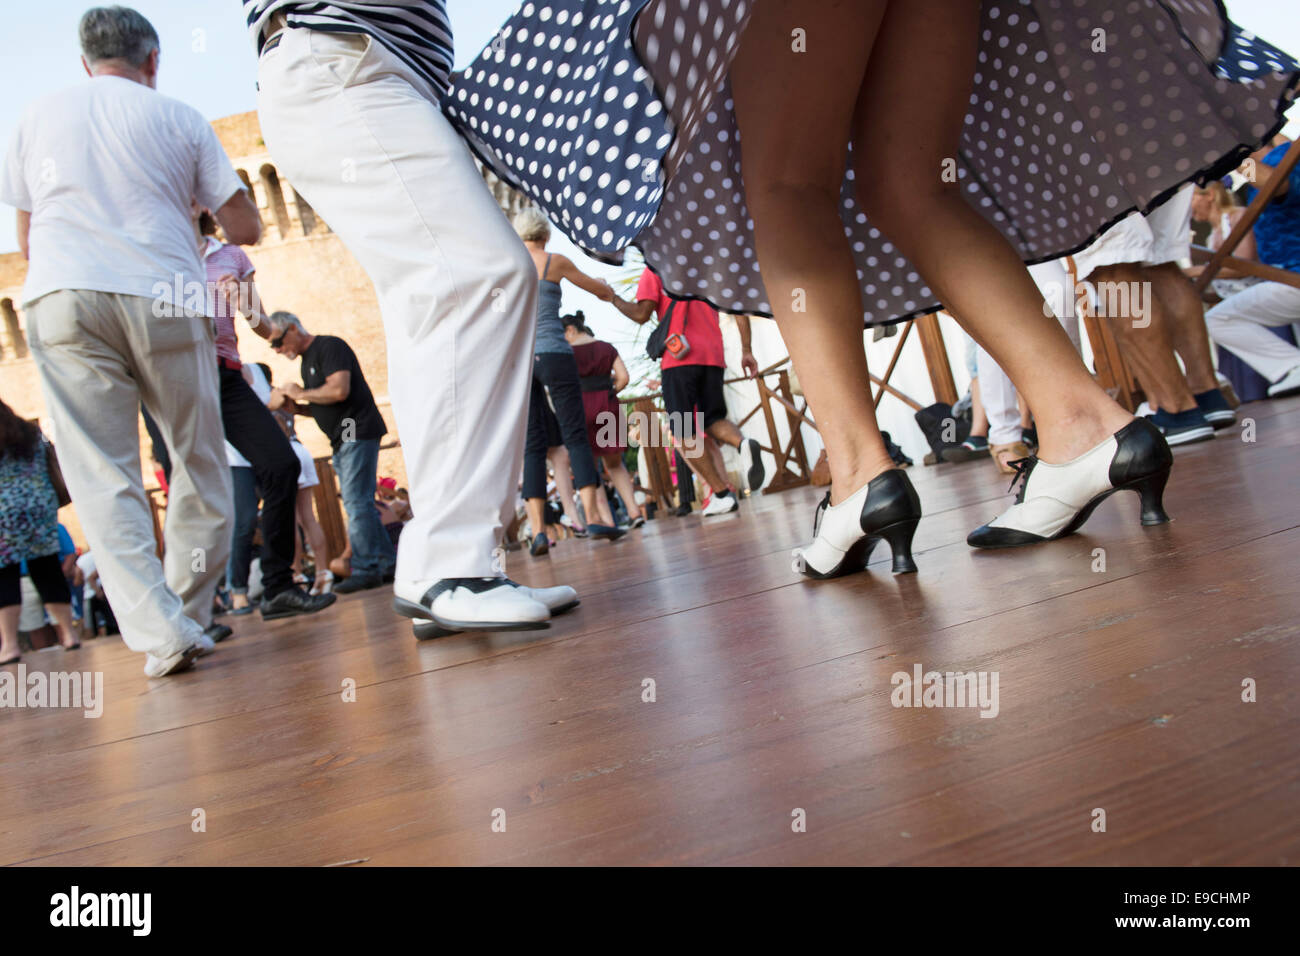 Dancing Feet Stock Photos Amp Dancing Feet Stock Images Alamy